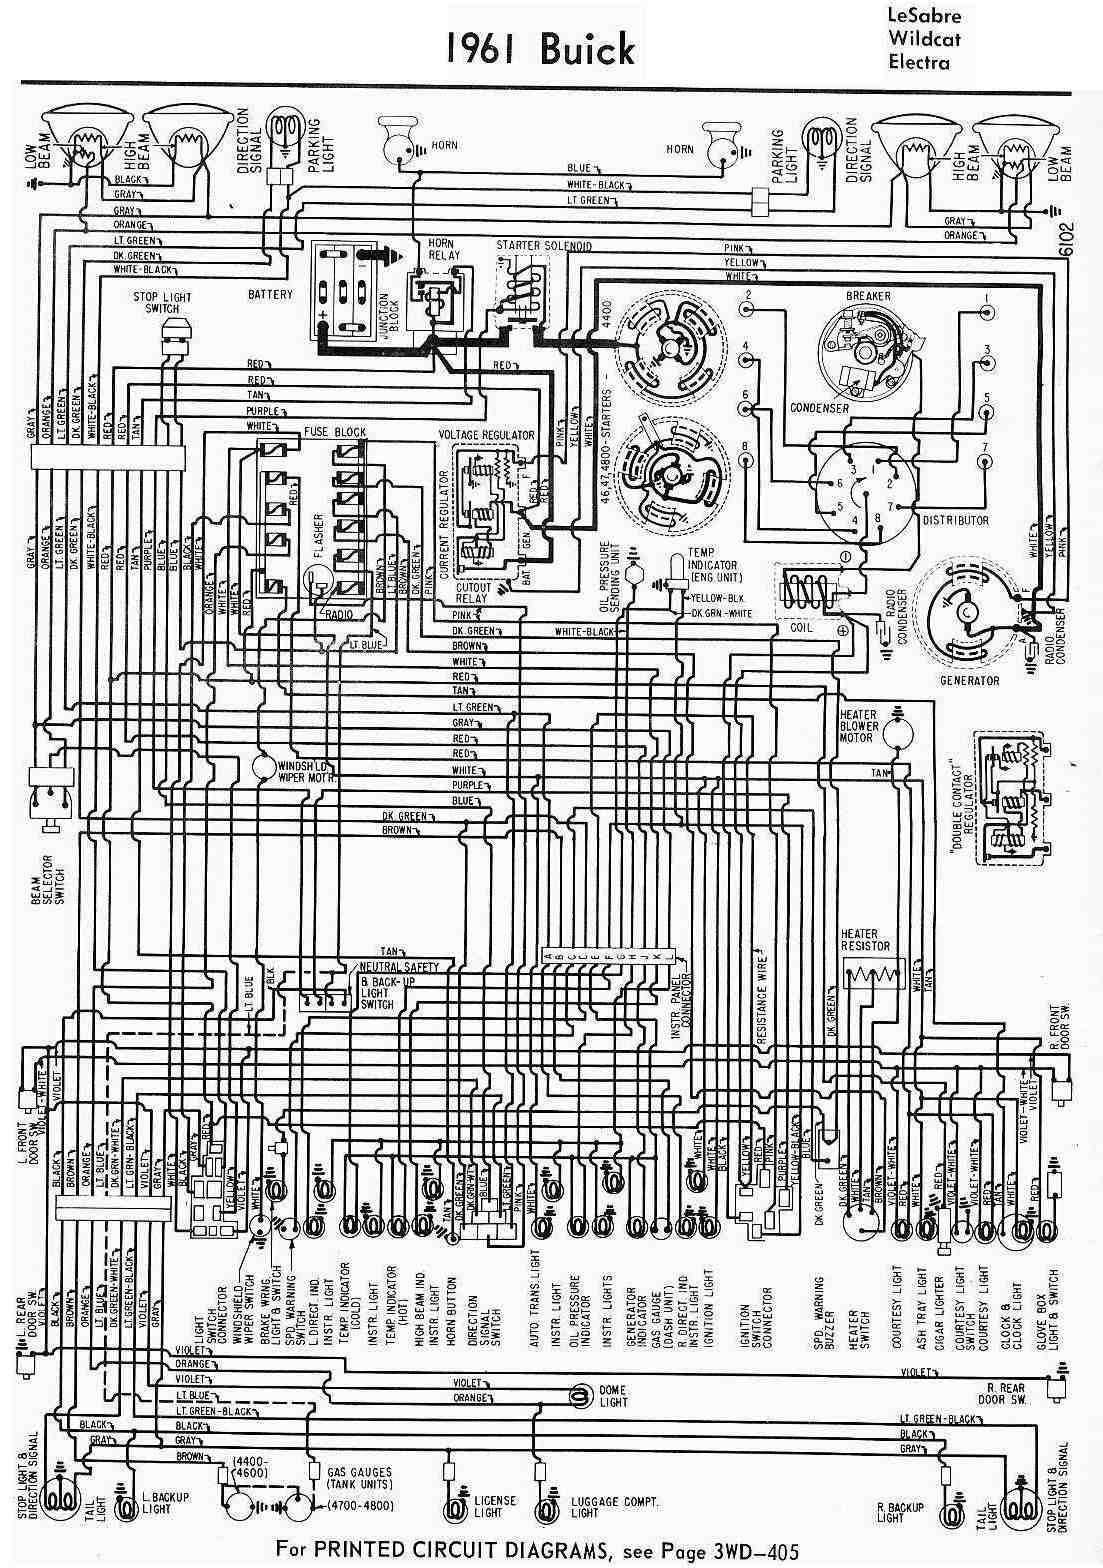 2013 buick regal wiring diagram online wiring diagram2013 buick regal wiring diagram schematic diagram2013 buick regal wiring diagram wiring diagram 1999 buick regal